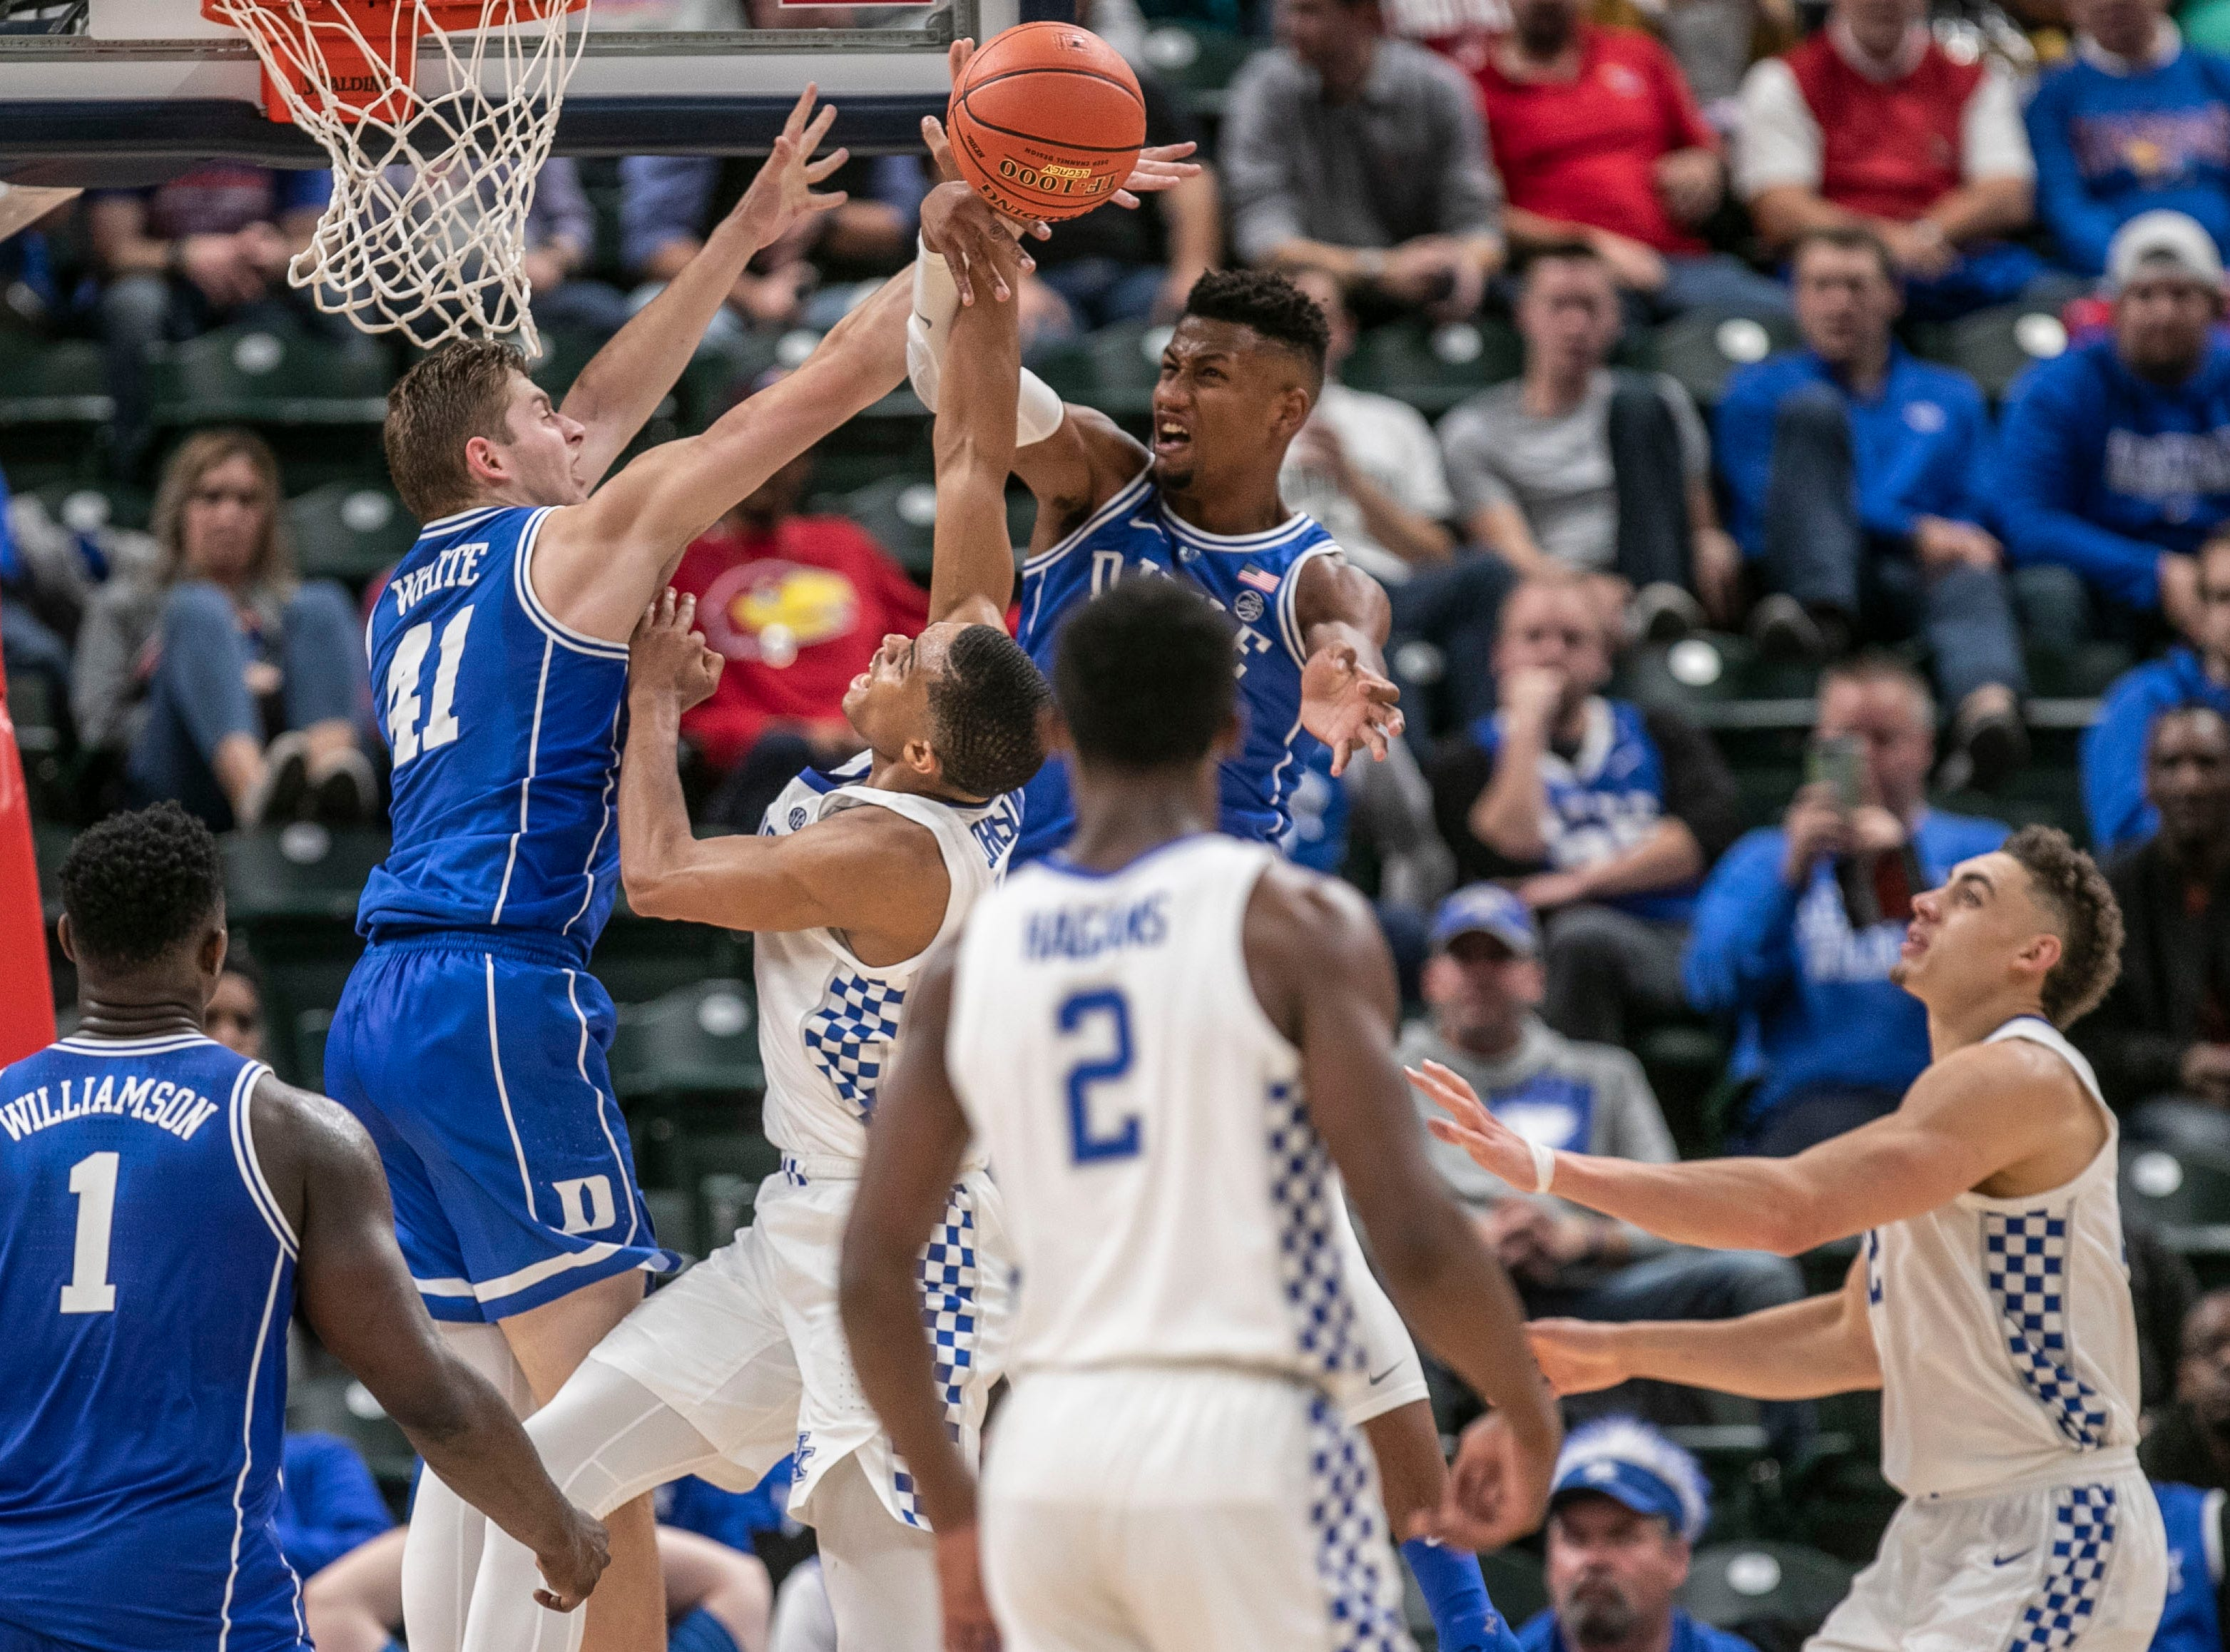 Duke's Javin DeLaurier blocked the shot of Kentucky's Keldon Johnson as the Blue Devils rolled past the Wildcats 118-84 in the Champions Classic Tuesday night. Nov. 6, 2018